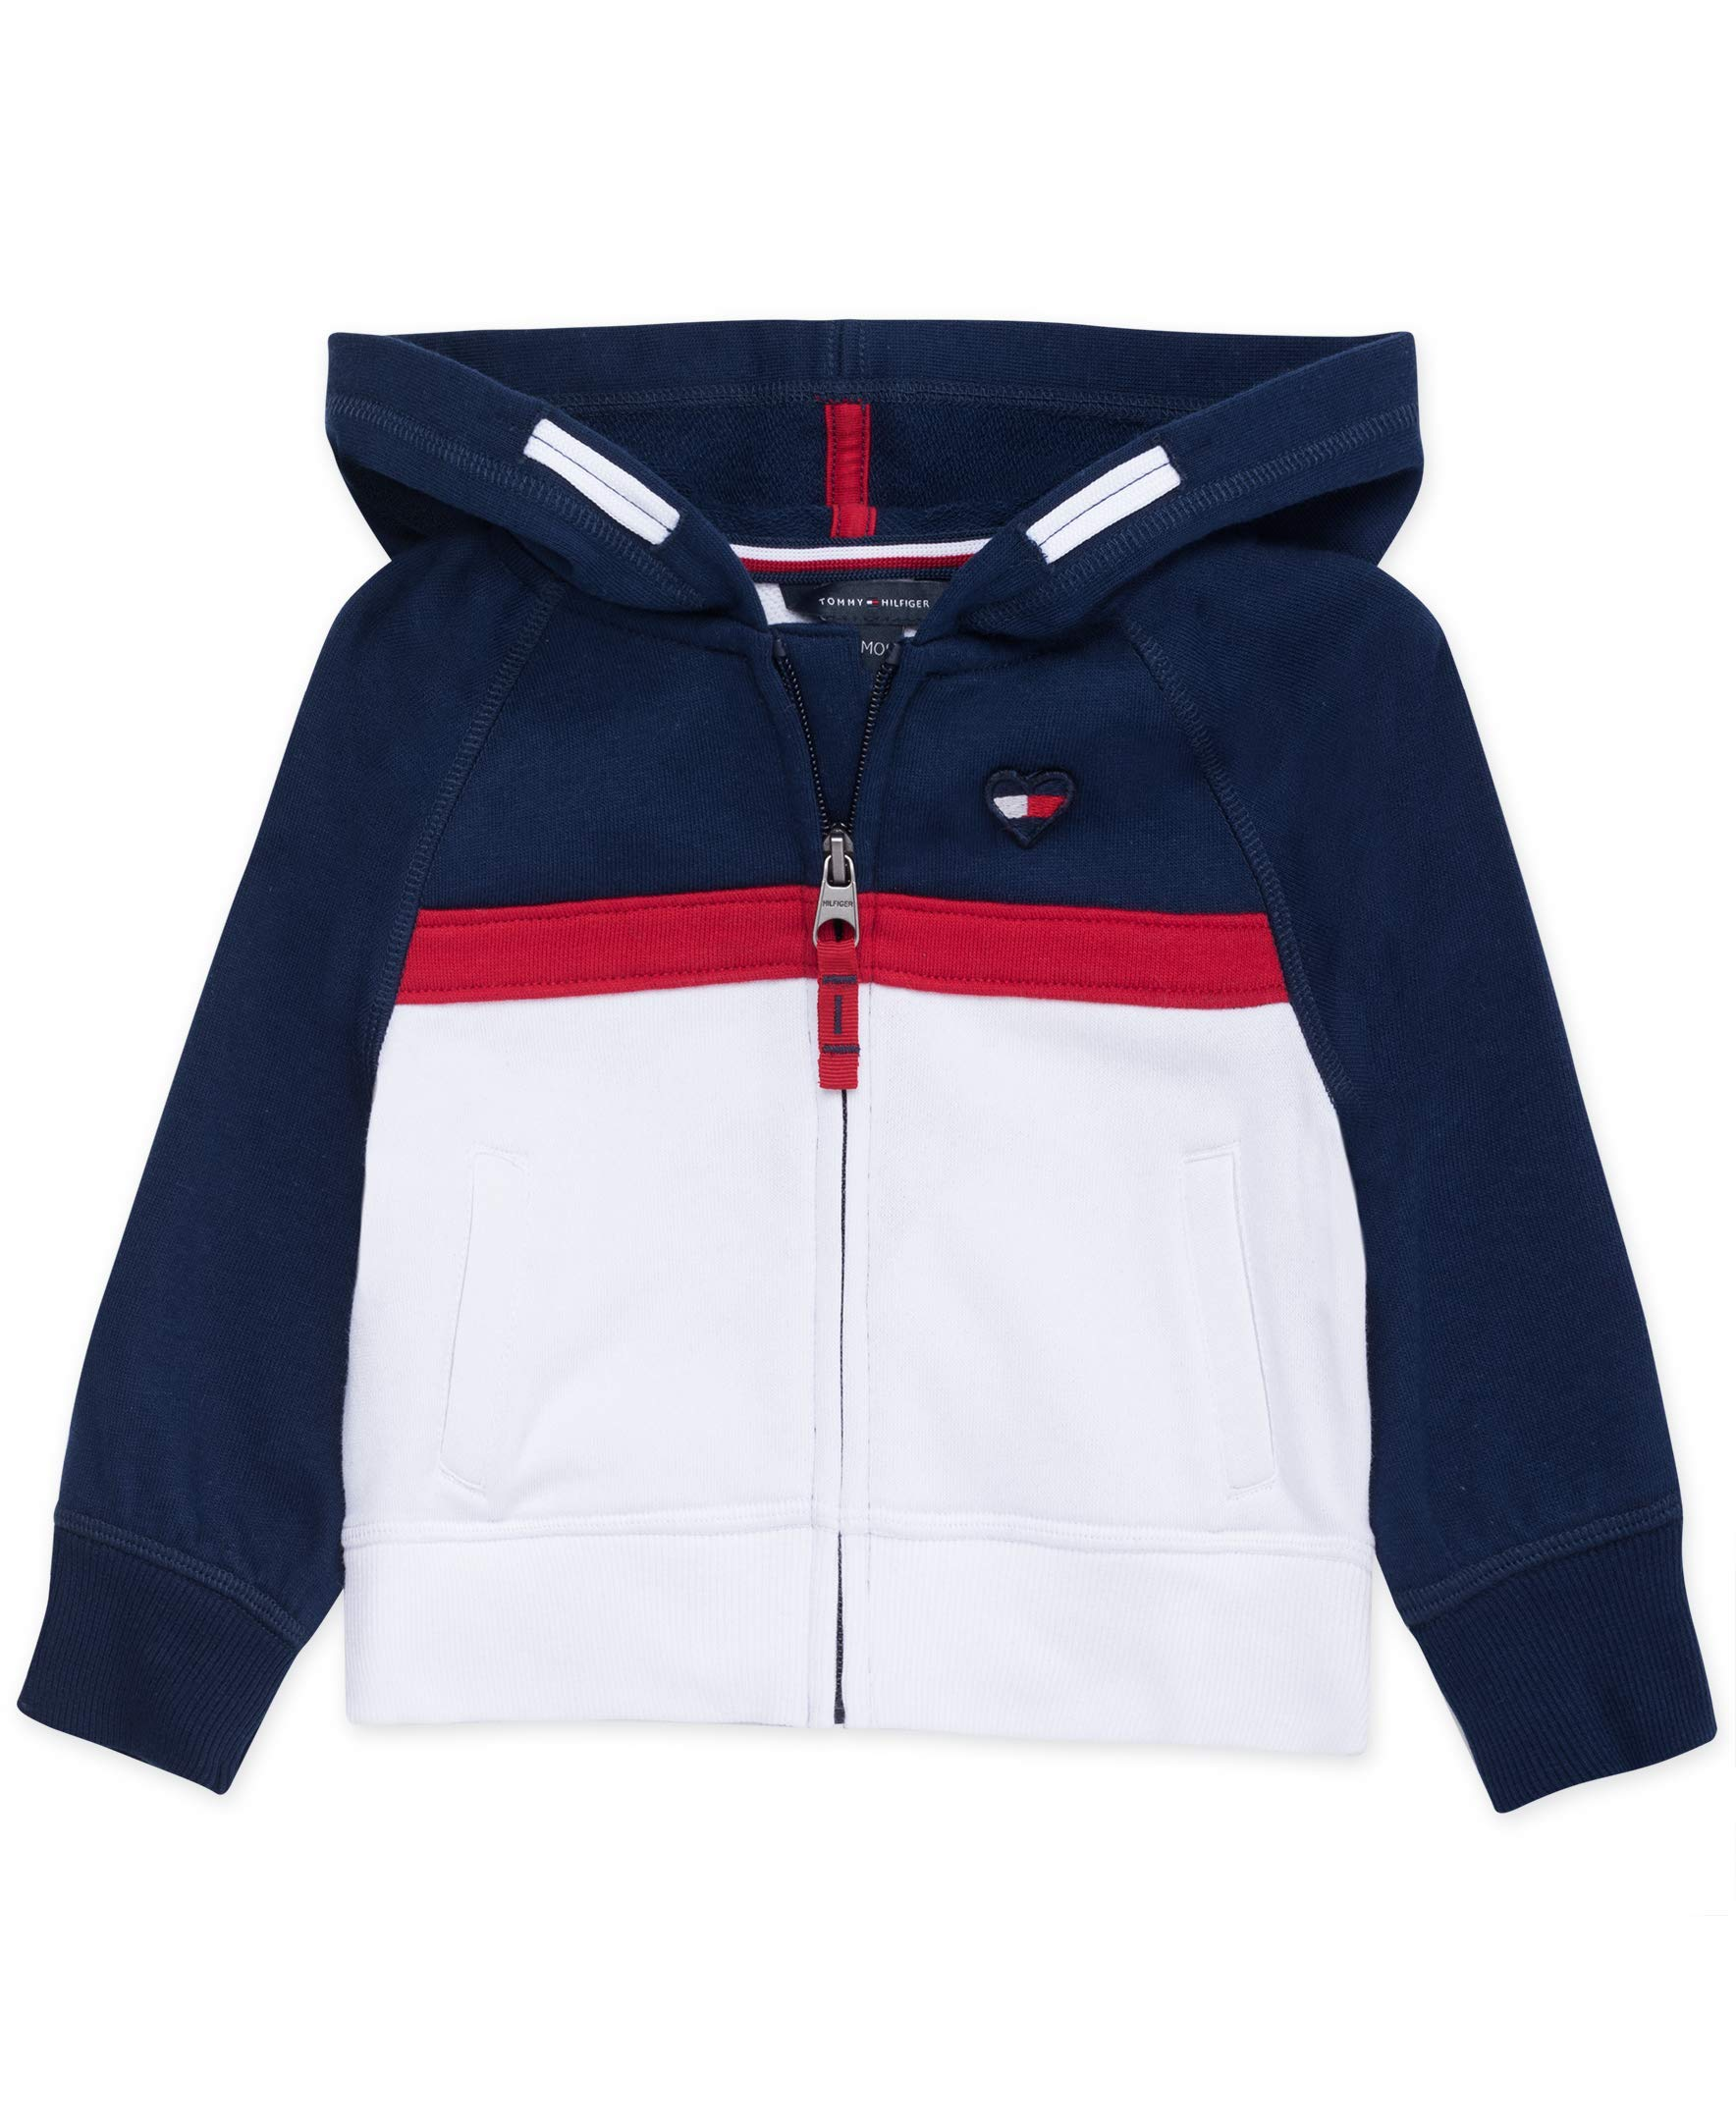 Tommy Hilfiger Baby Girls Full Zip Hoodie, Navy Block, 24M by Tommy Hilfiger